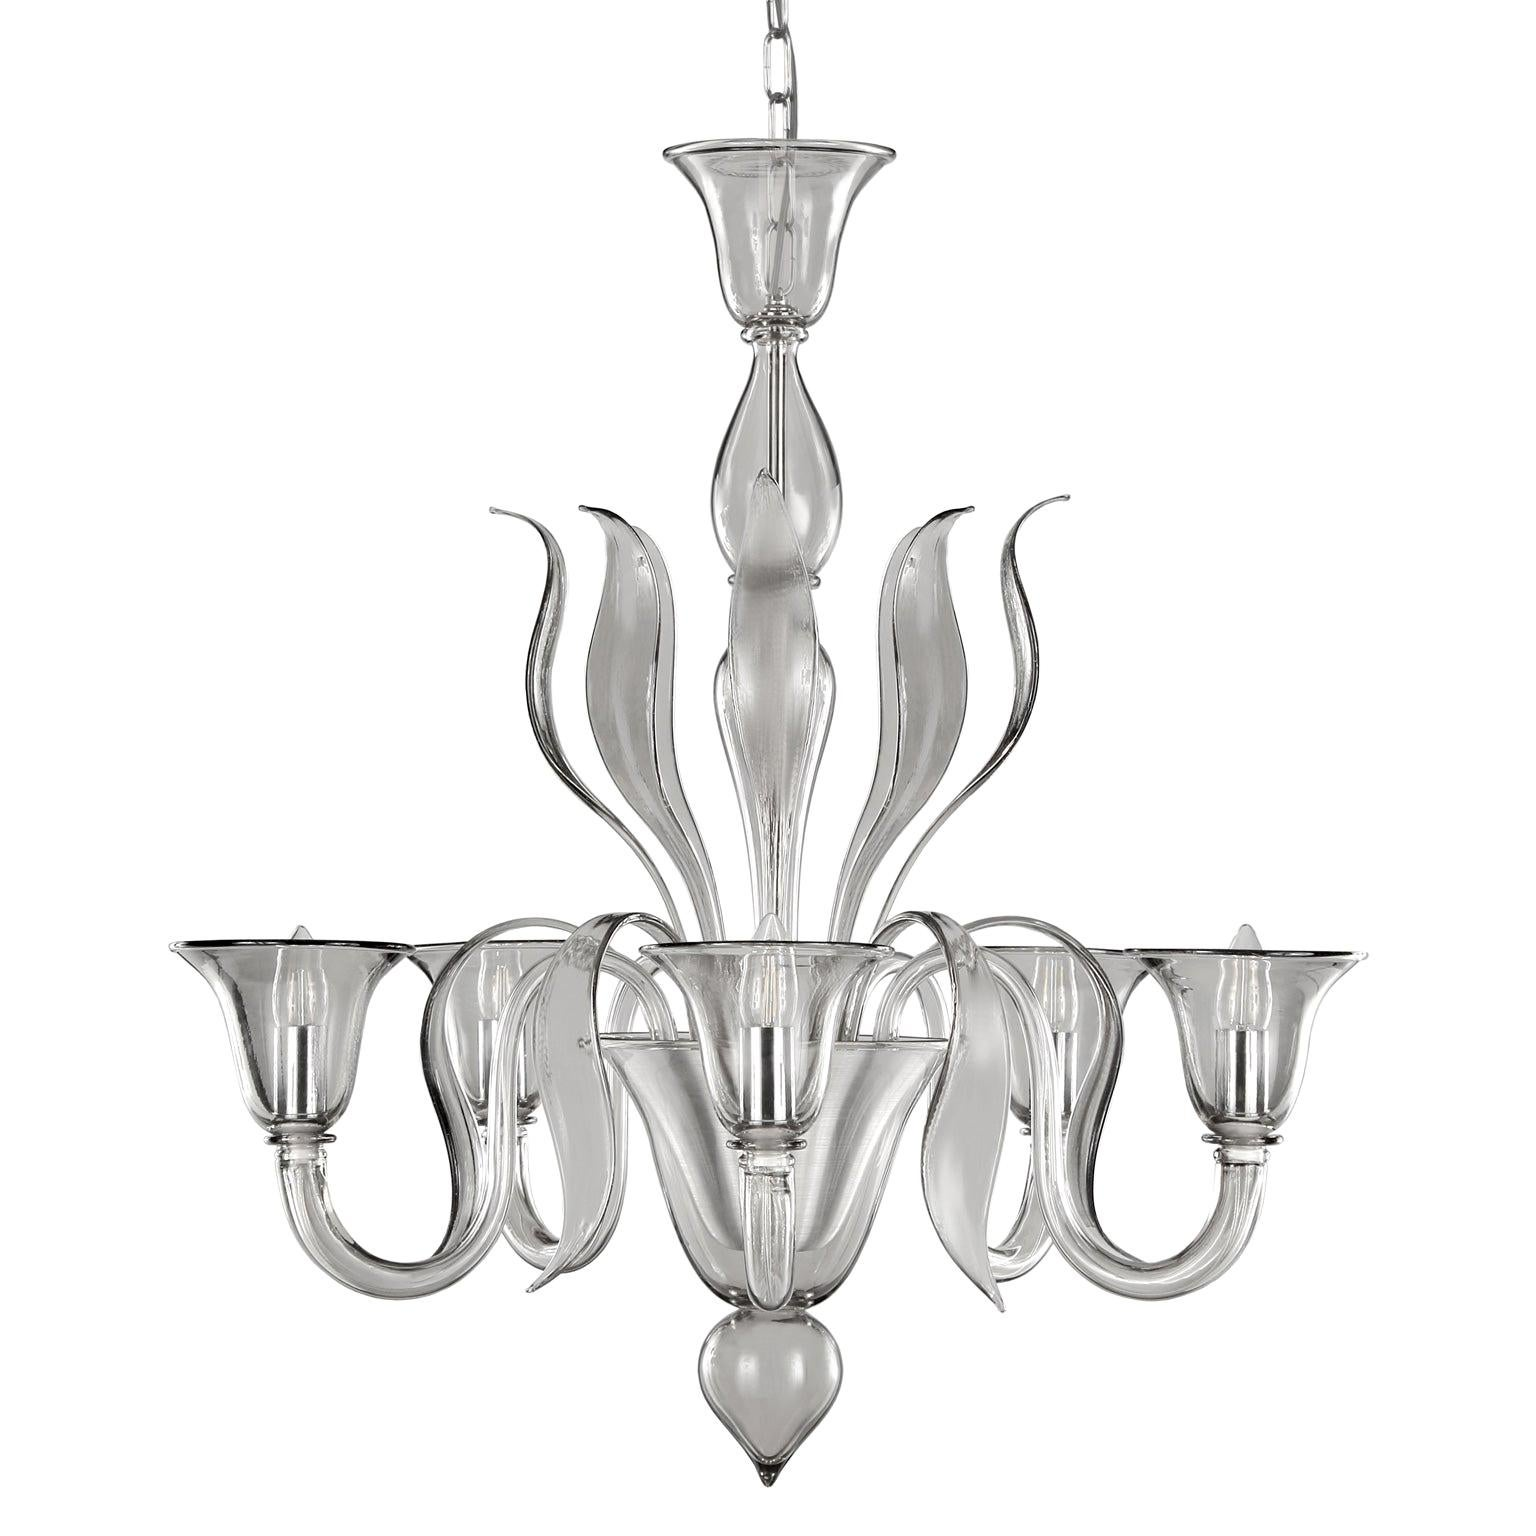 Details about Chandelier in Murano Glass 5 lights